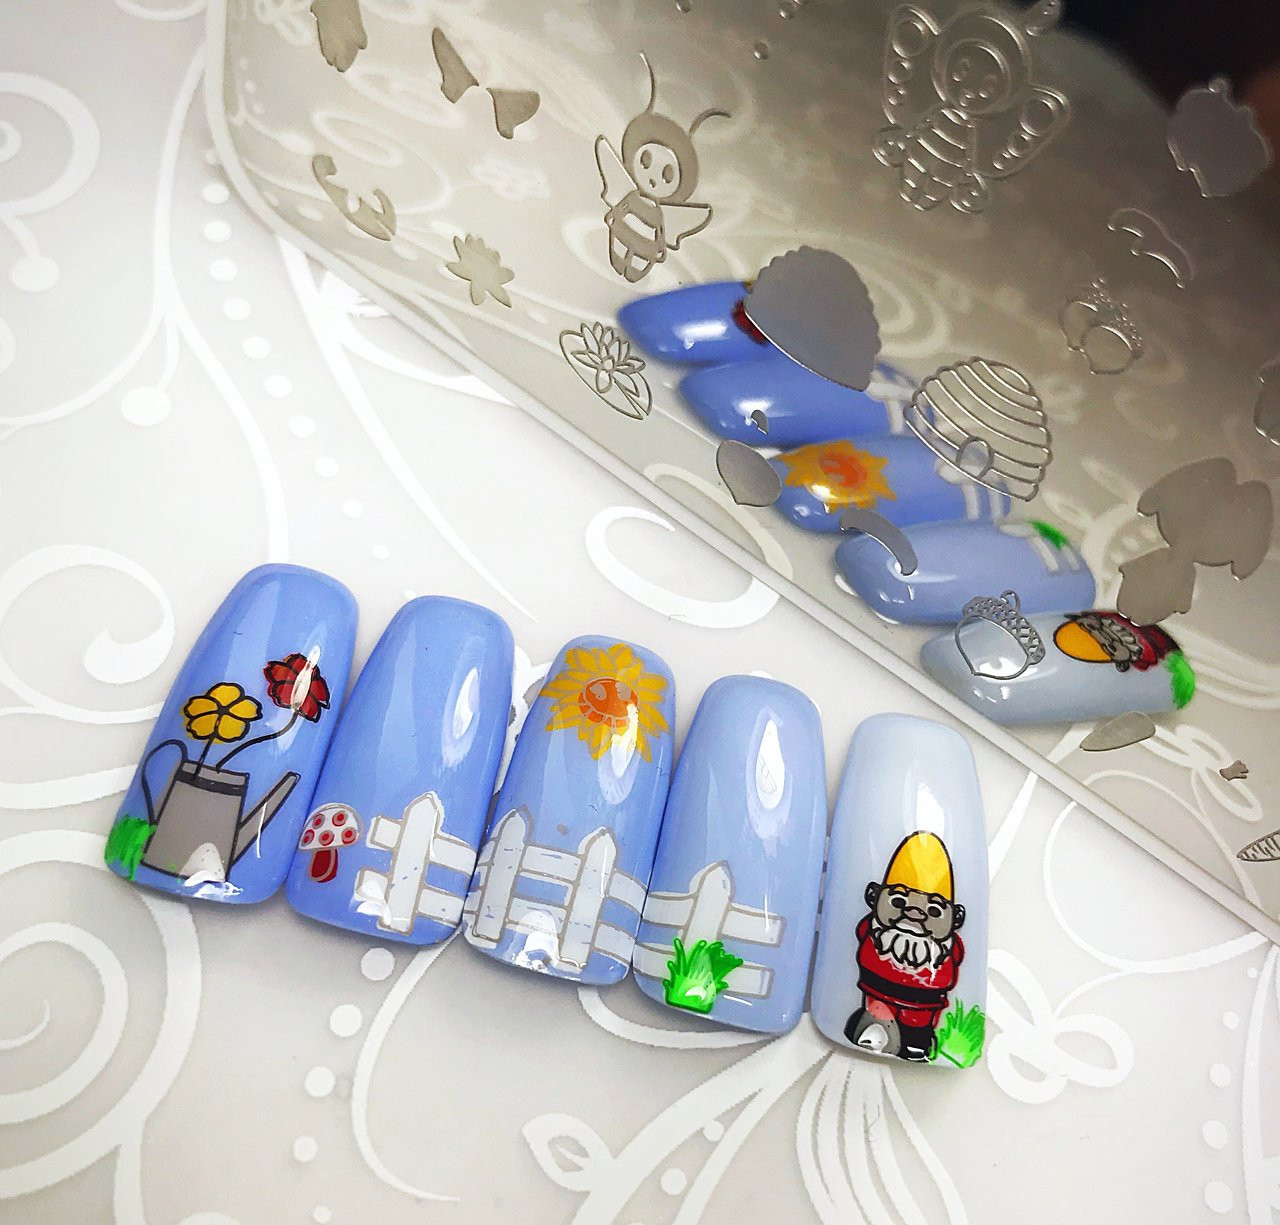 Gnome Place Like Home nail stamping plate by Clear Jelly Stamper. Available in the USA at www.lanternandwren.com